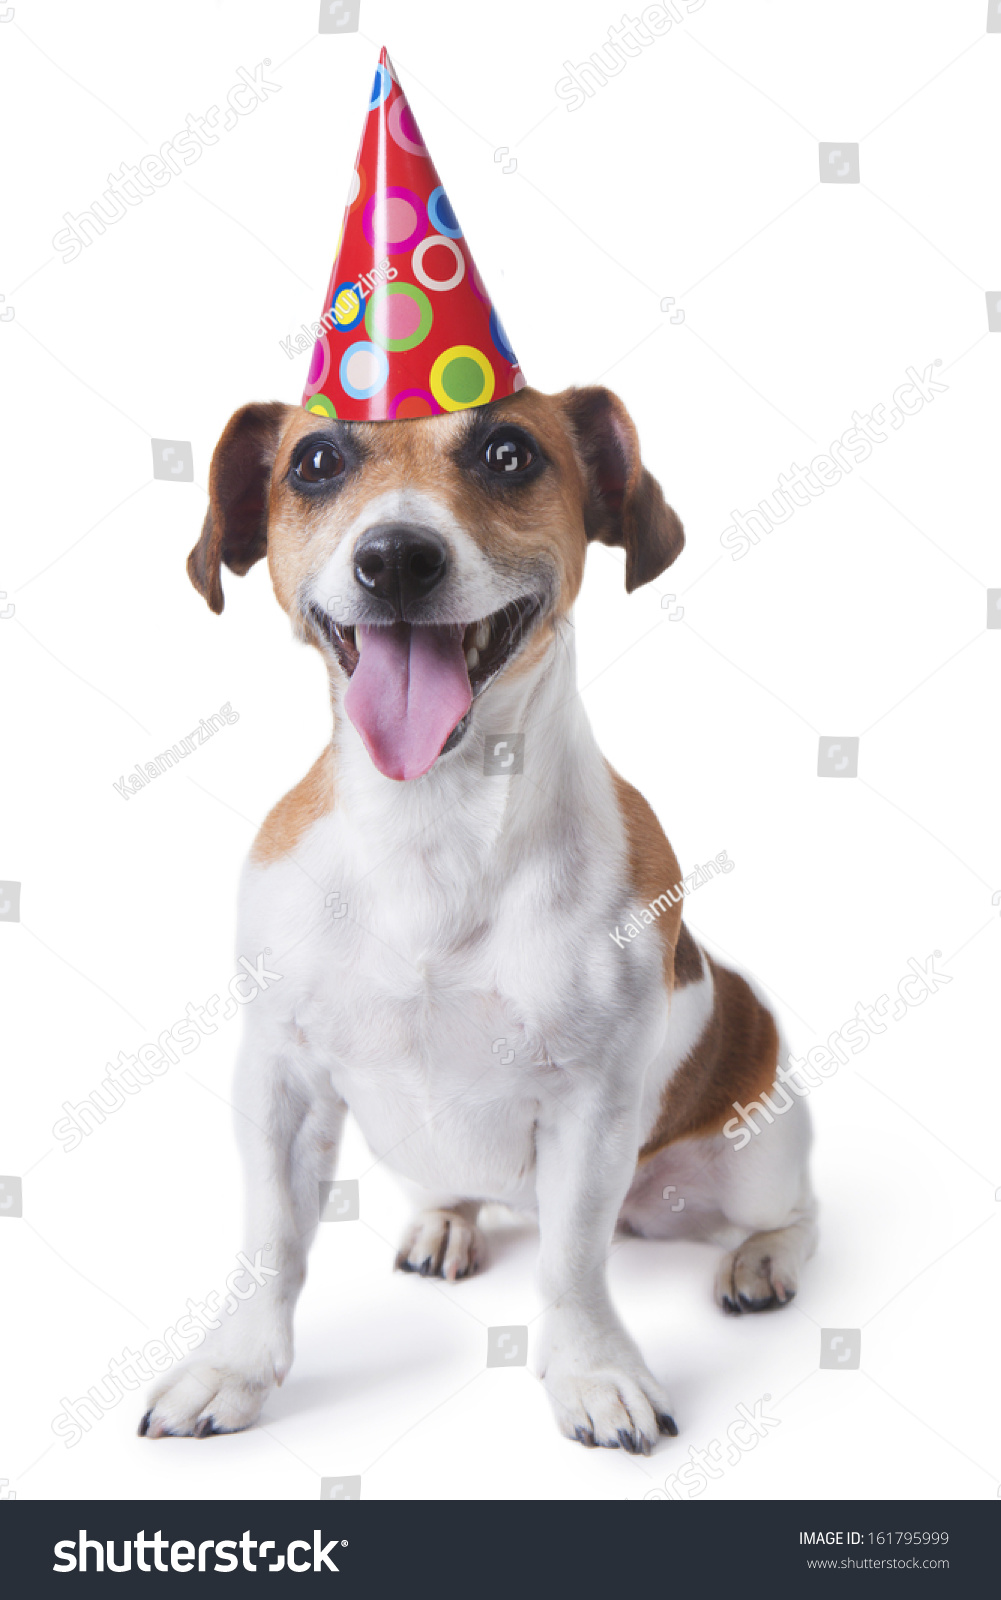 Cute Dog In Red Party Hat Designed Colored Circles Smiling Wishes Happy Birthday White Background